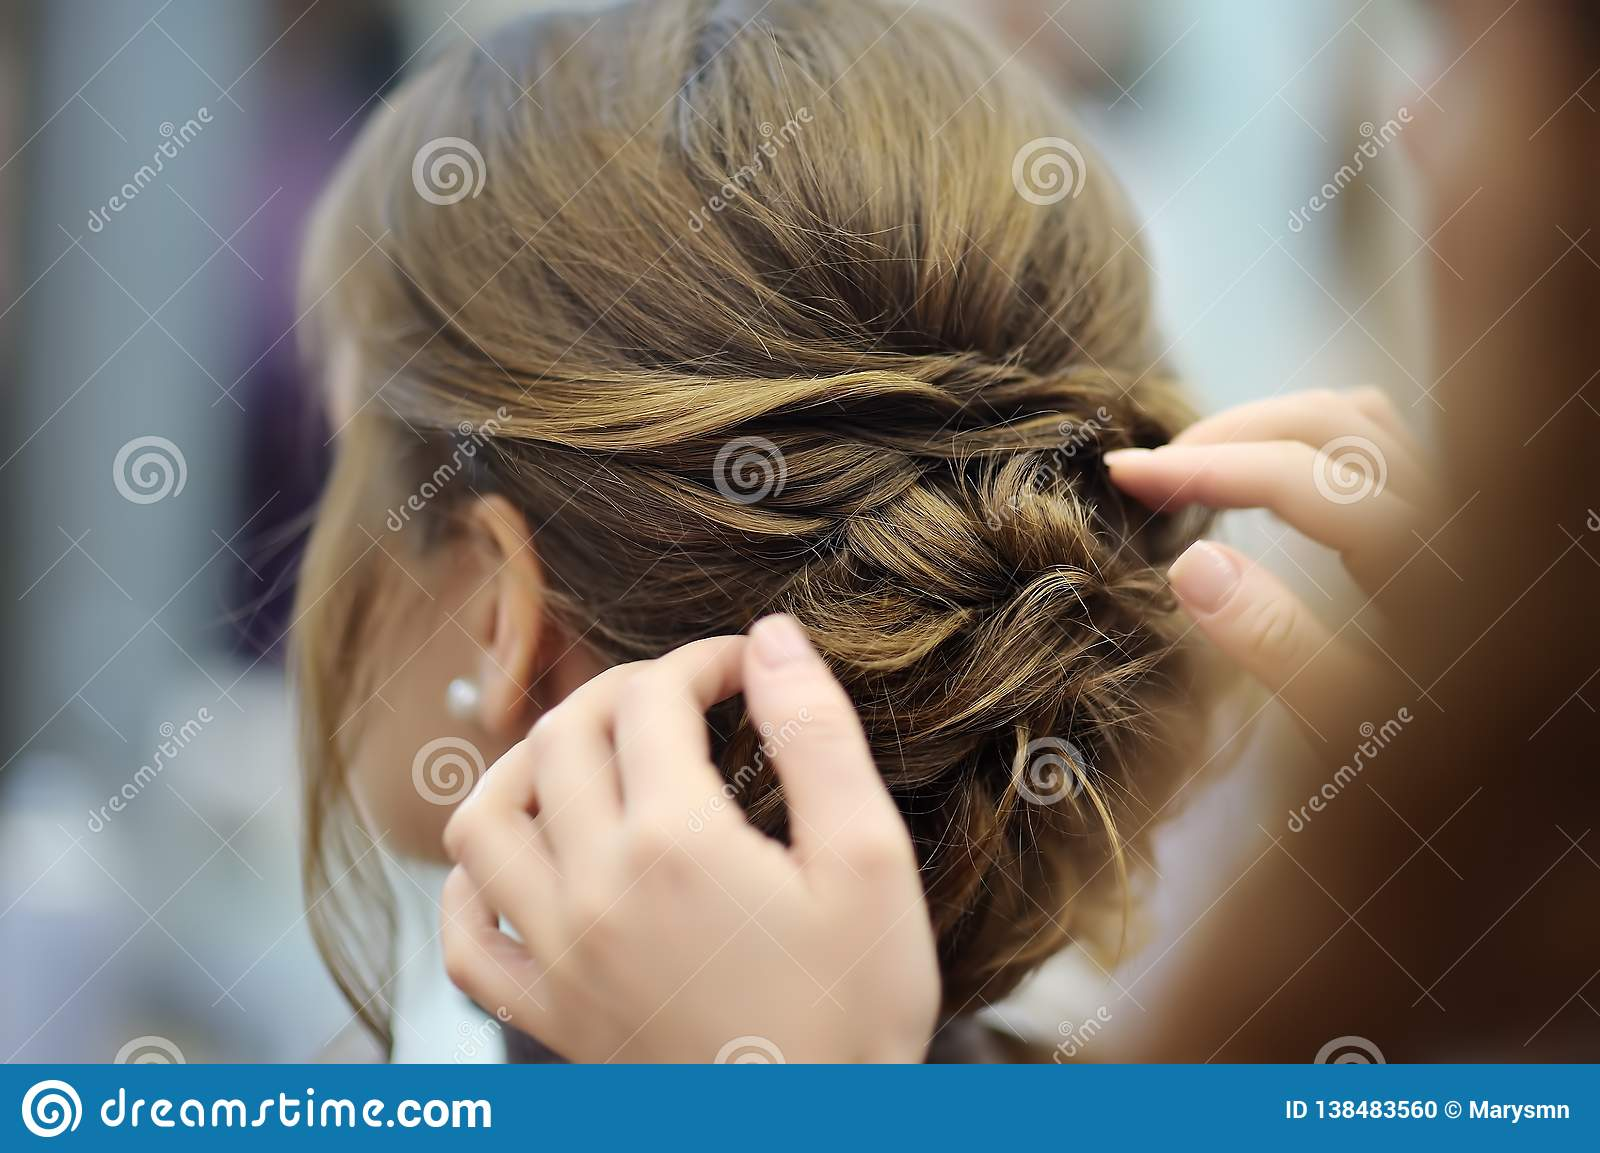 Ball Hairstyles Photos   Free & Royalty Free Stock Photos from ...